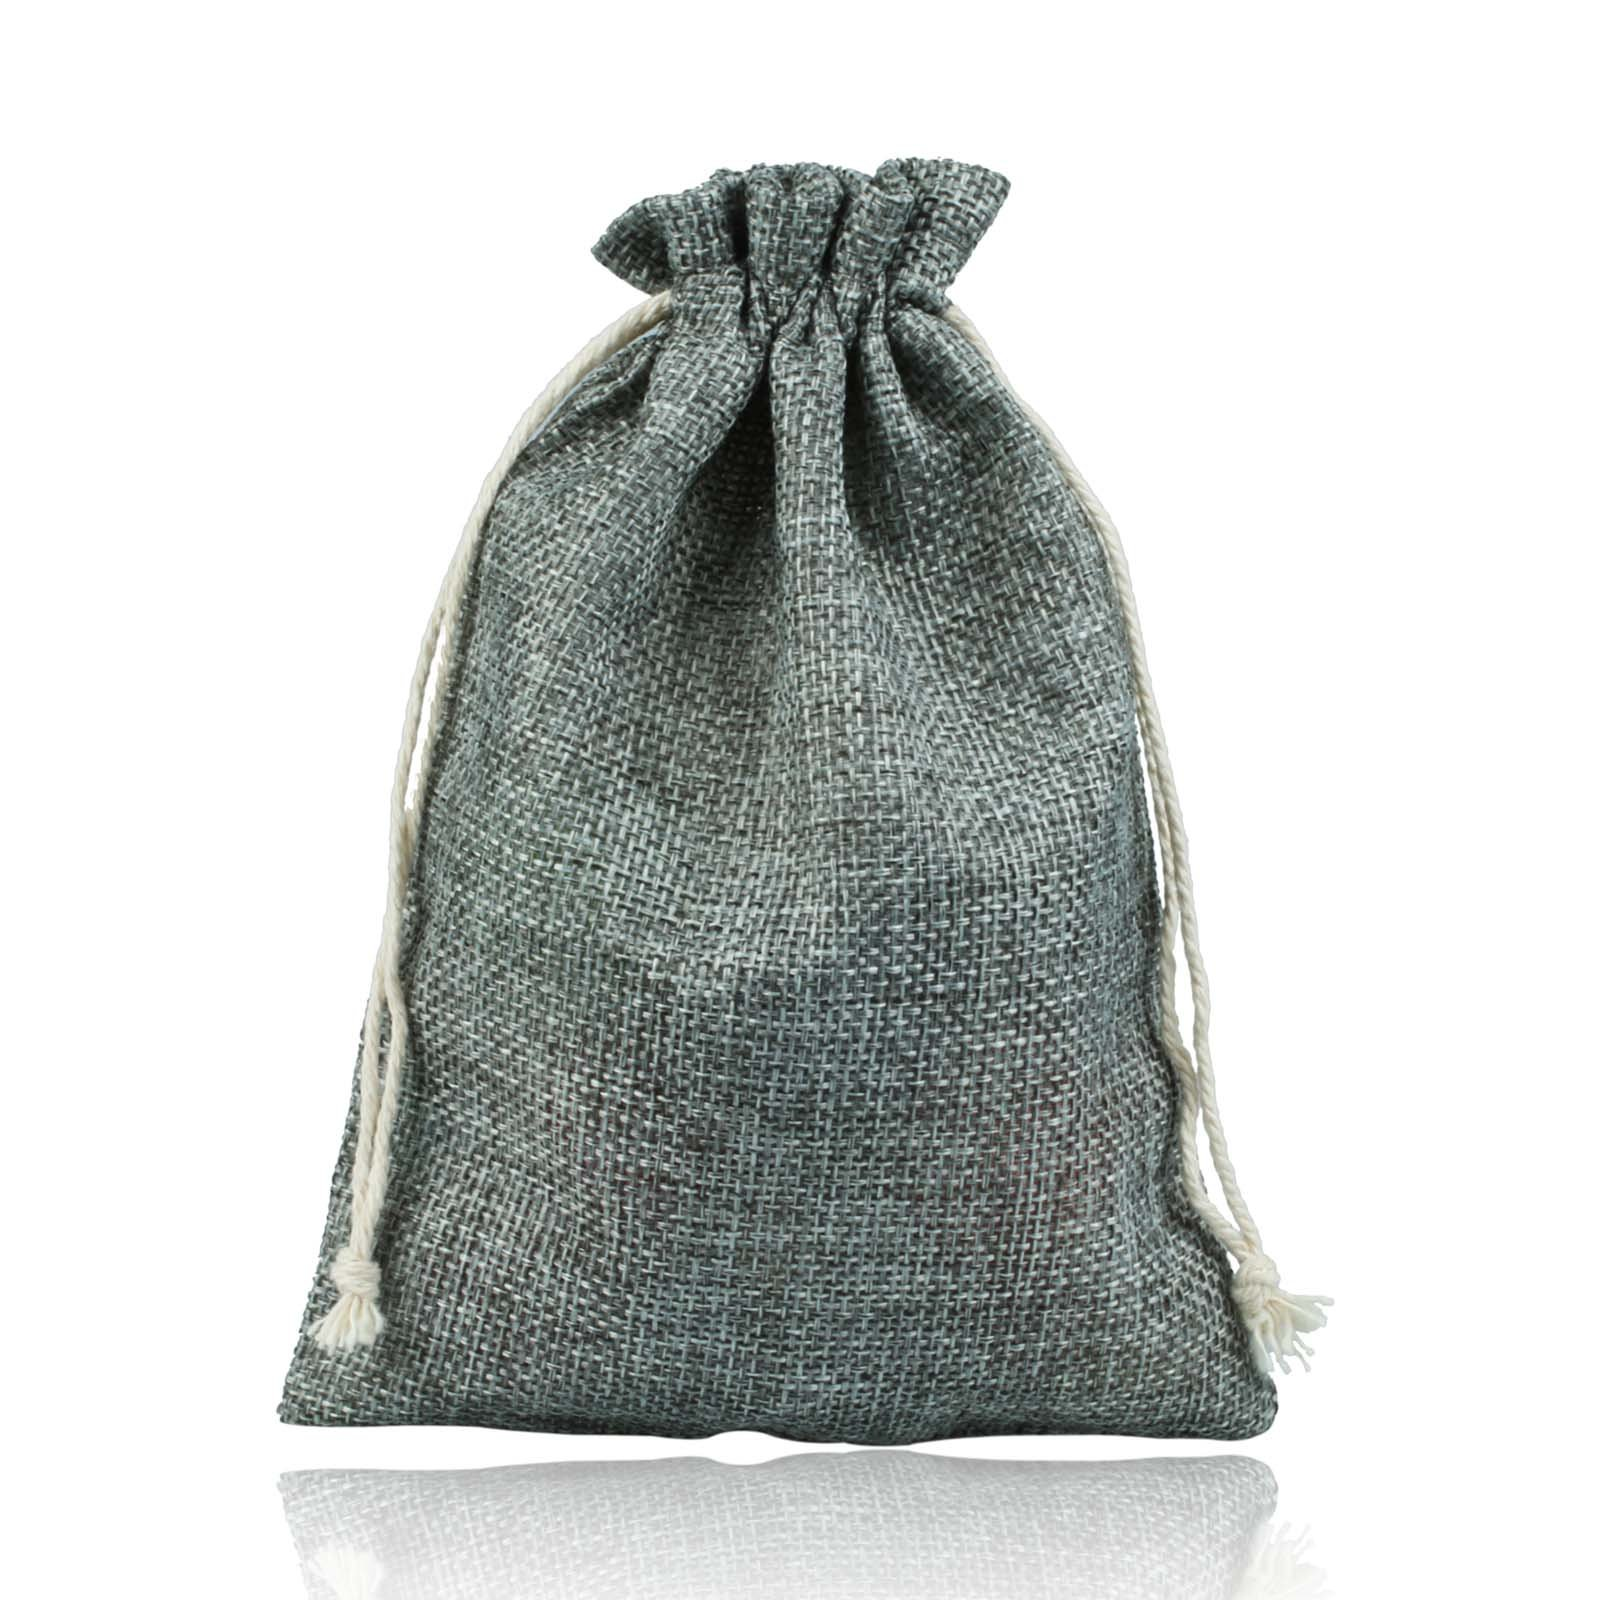 vLoveLife Silver Burlap Candy Bags Jute Wedding Gift Bag With Drawstring Wedding Party Favor Gift Pouches 5'' x 7'' - Pack Of 50